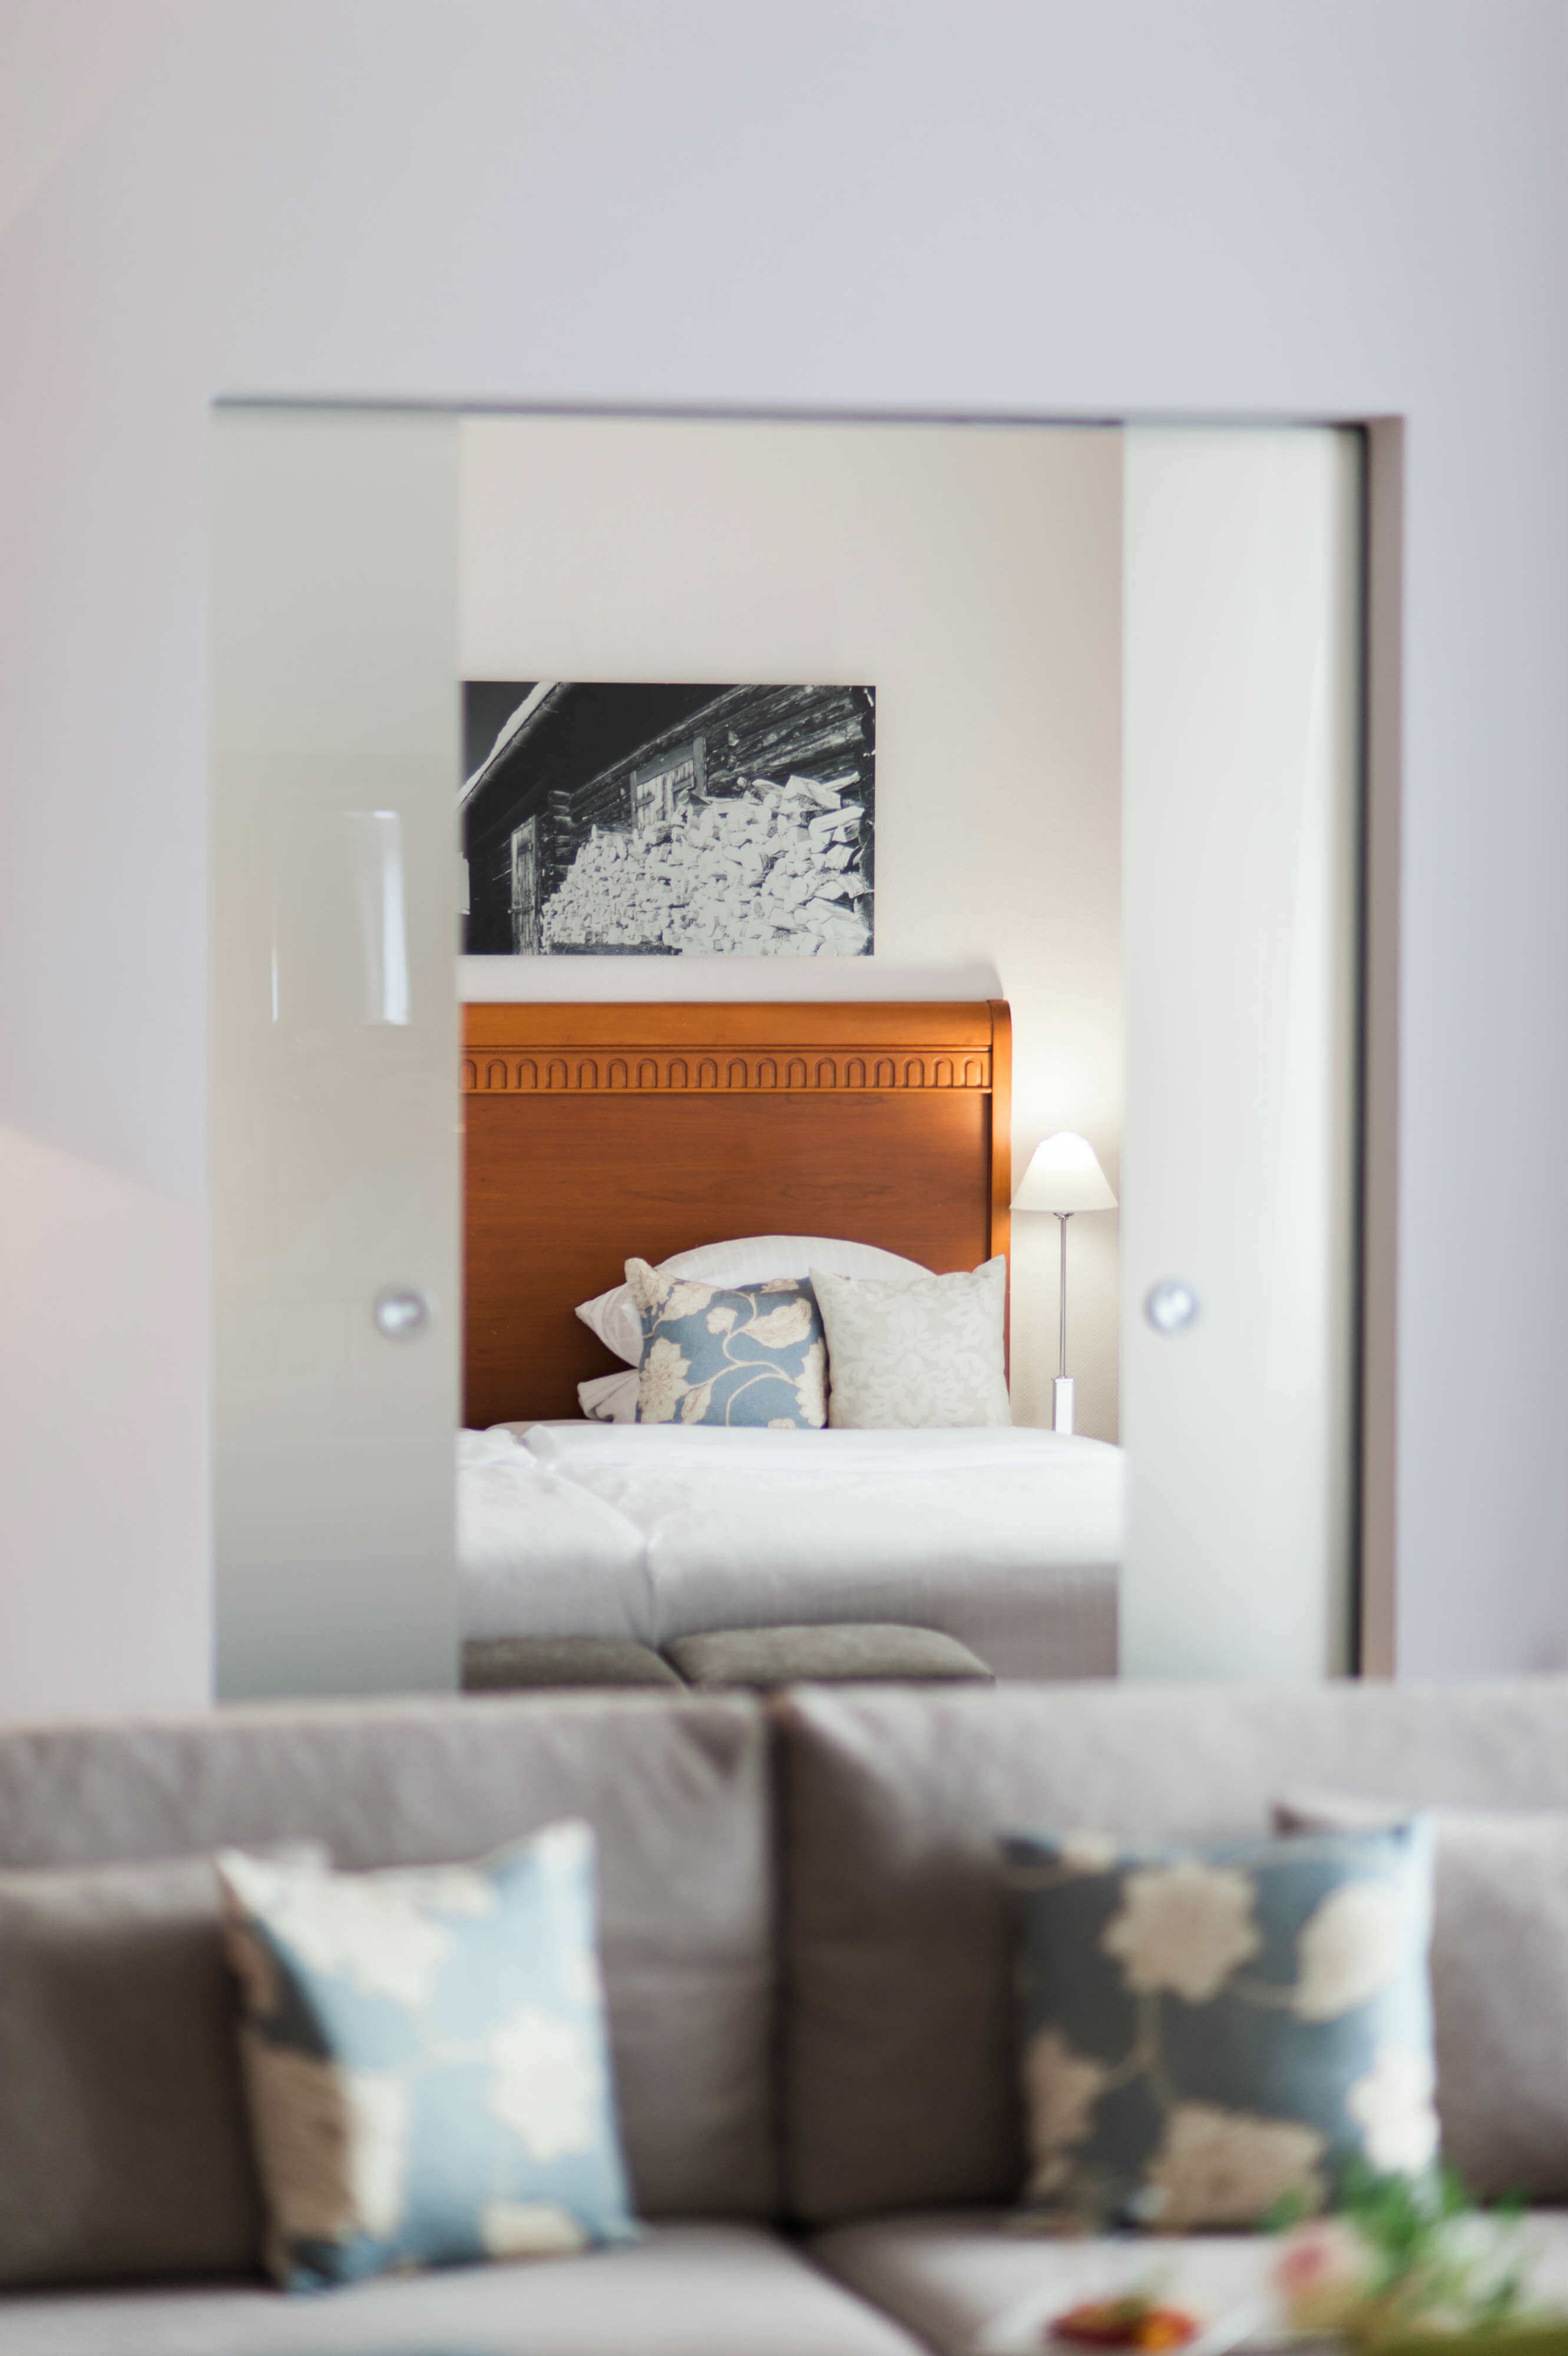 Hotel Alps Room Luxus stay